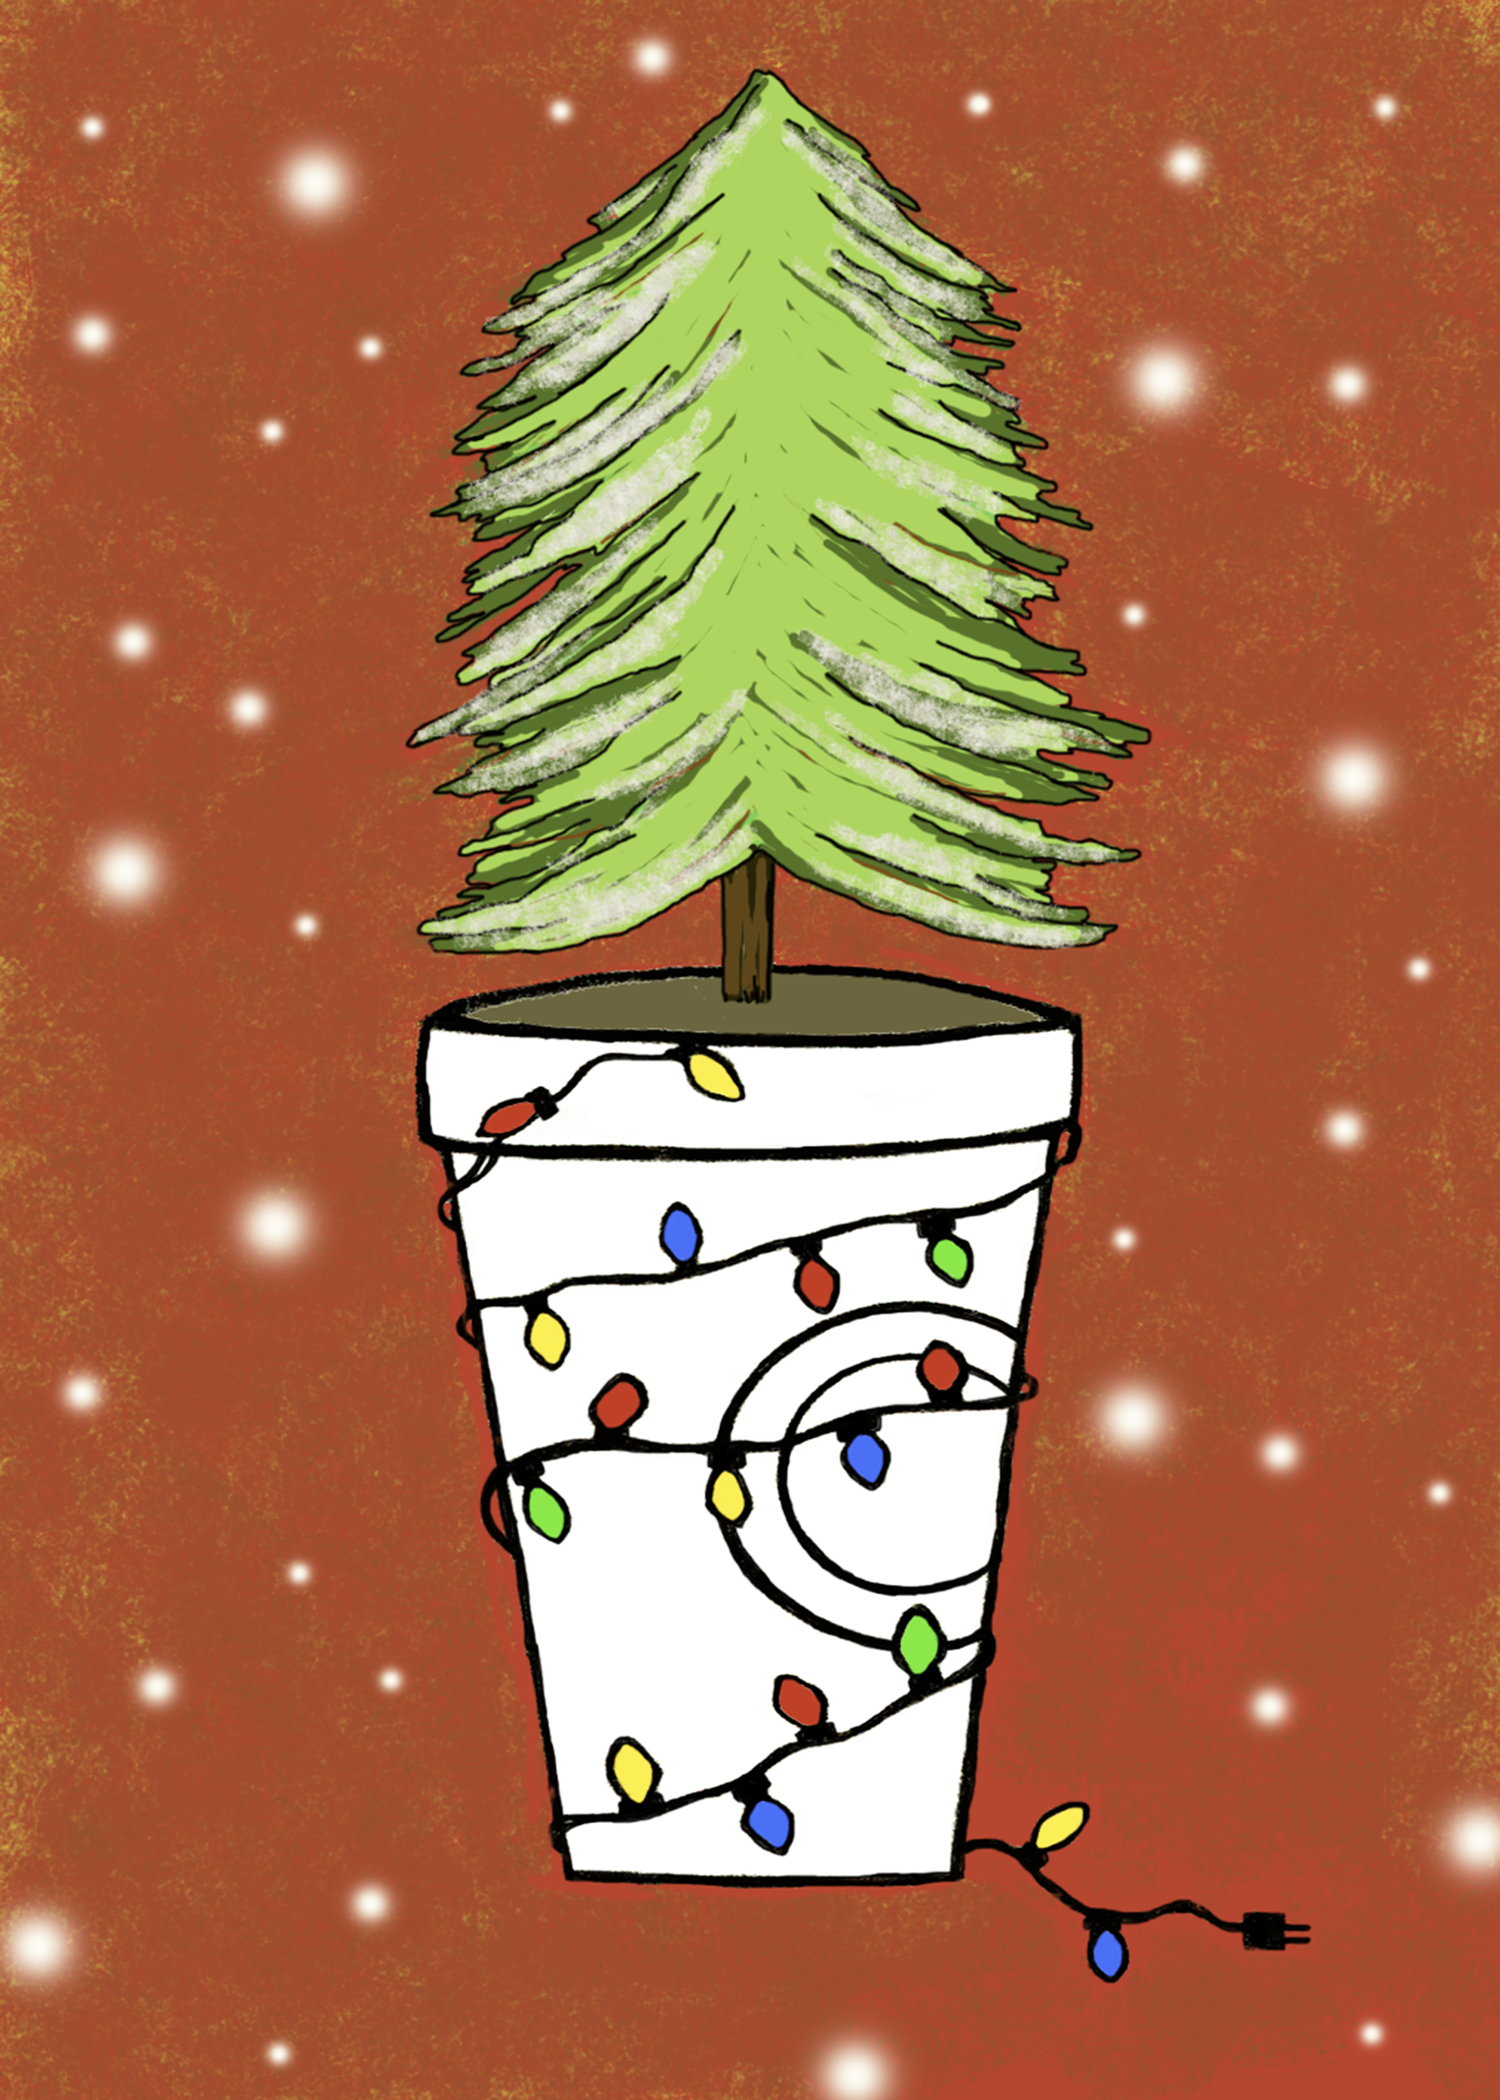 Cup with tree and lights